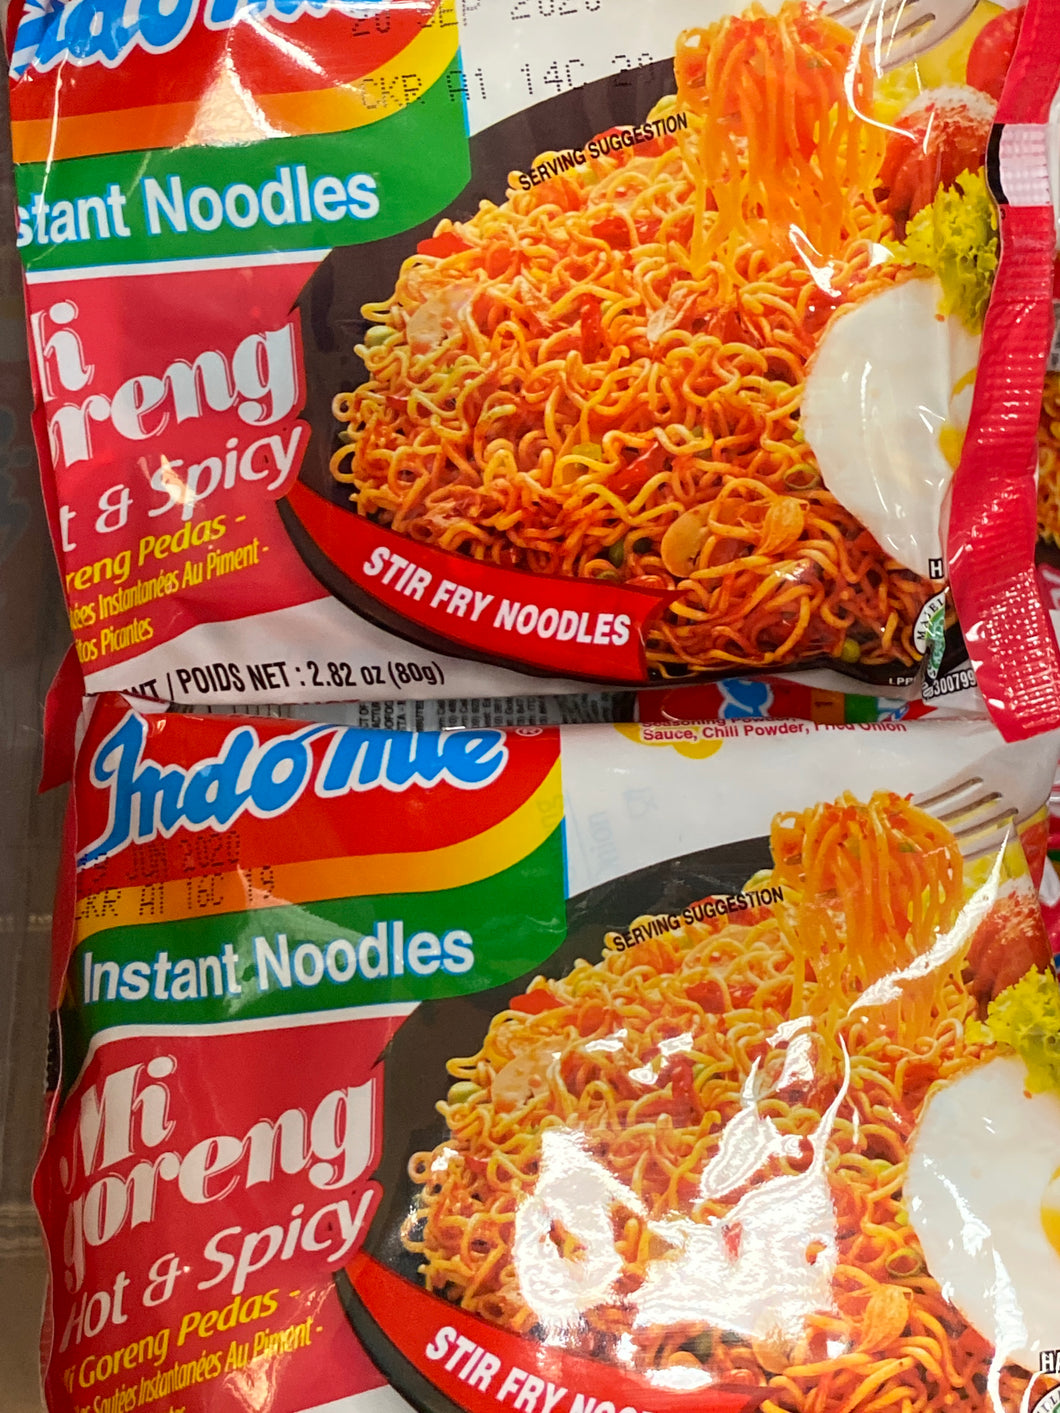 INDOMIE HOT & SPICY INSTANT NOODLE